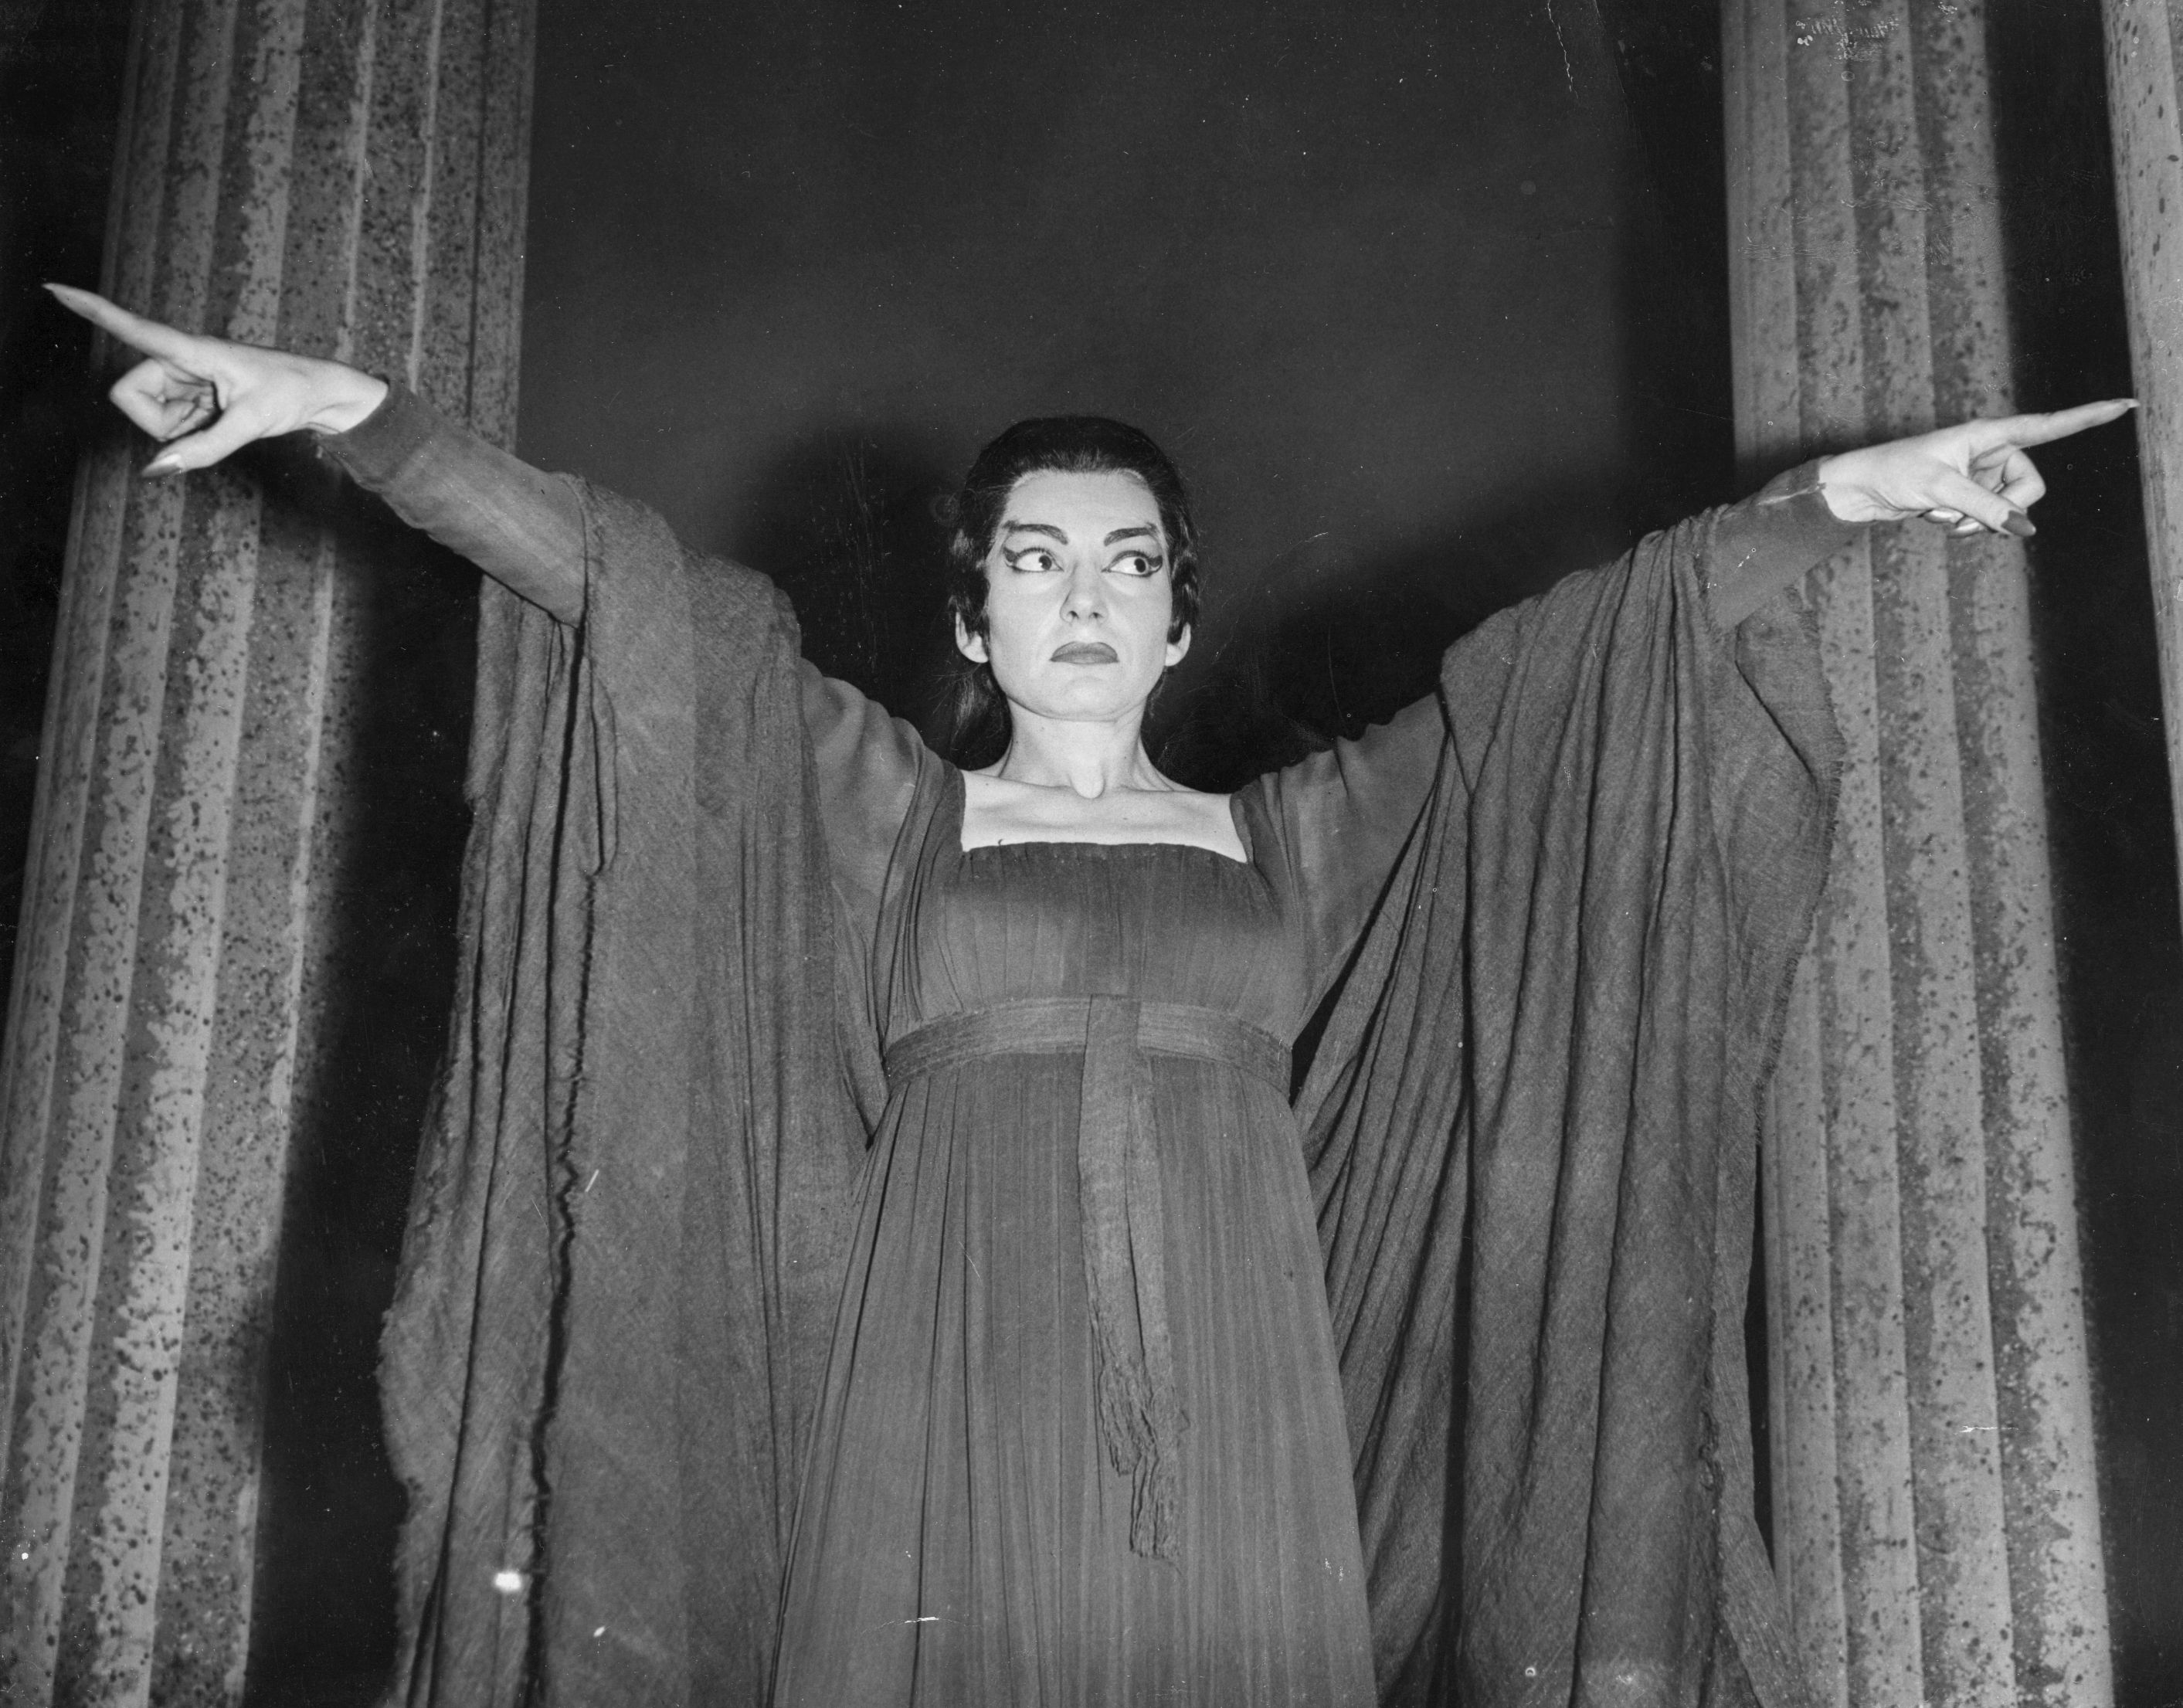 Maria Callas en Medea, de Luigi Cherubini. Covent Garden, Londres, 1959. John Franks/Getty Images